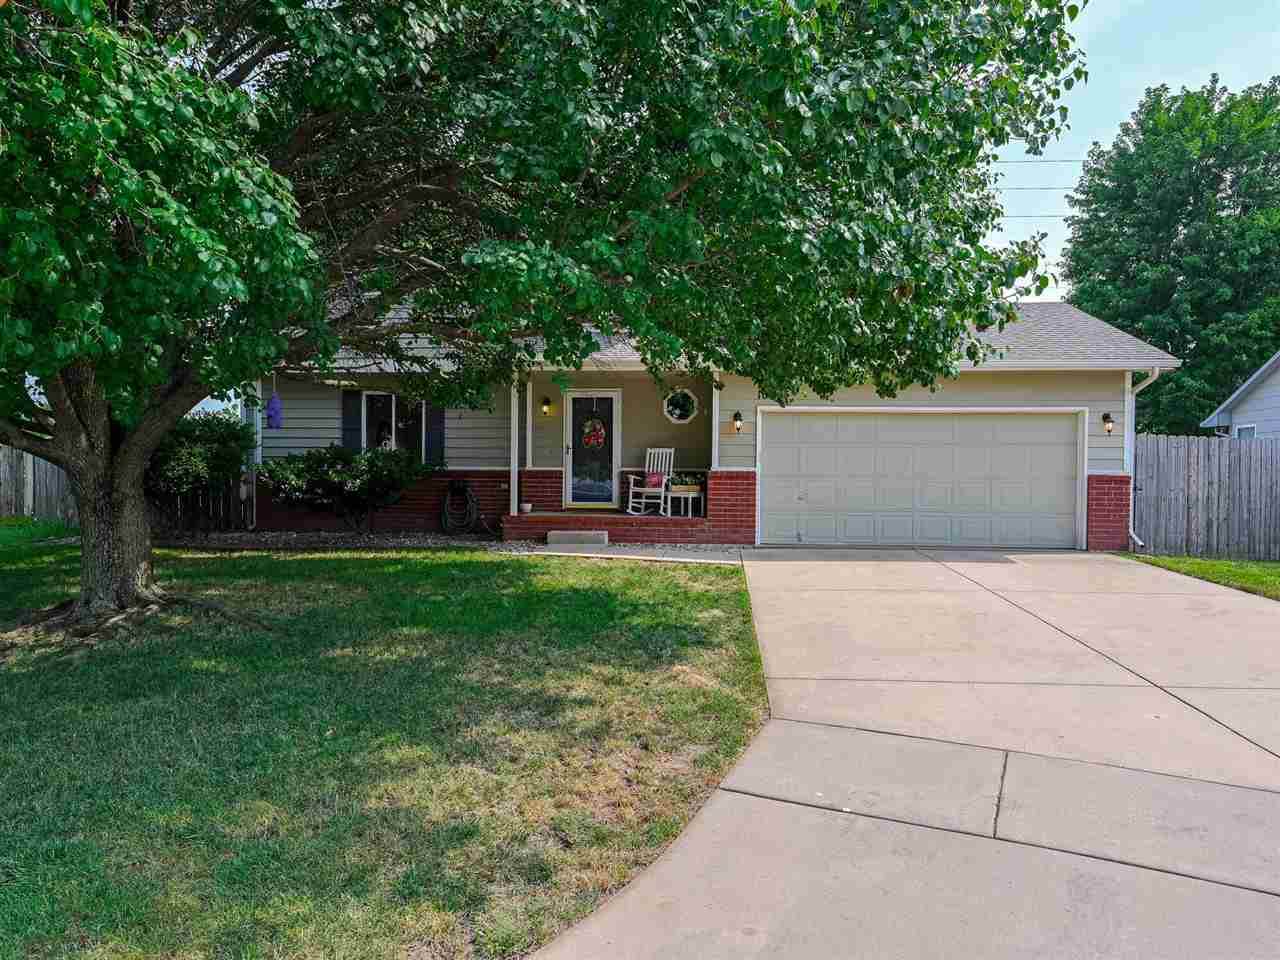 Goddard schools!!  CURB APPEAL!!  Love the front porch of this house on a cul-de-sac lot, in a quiet